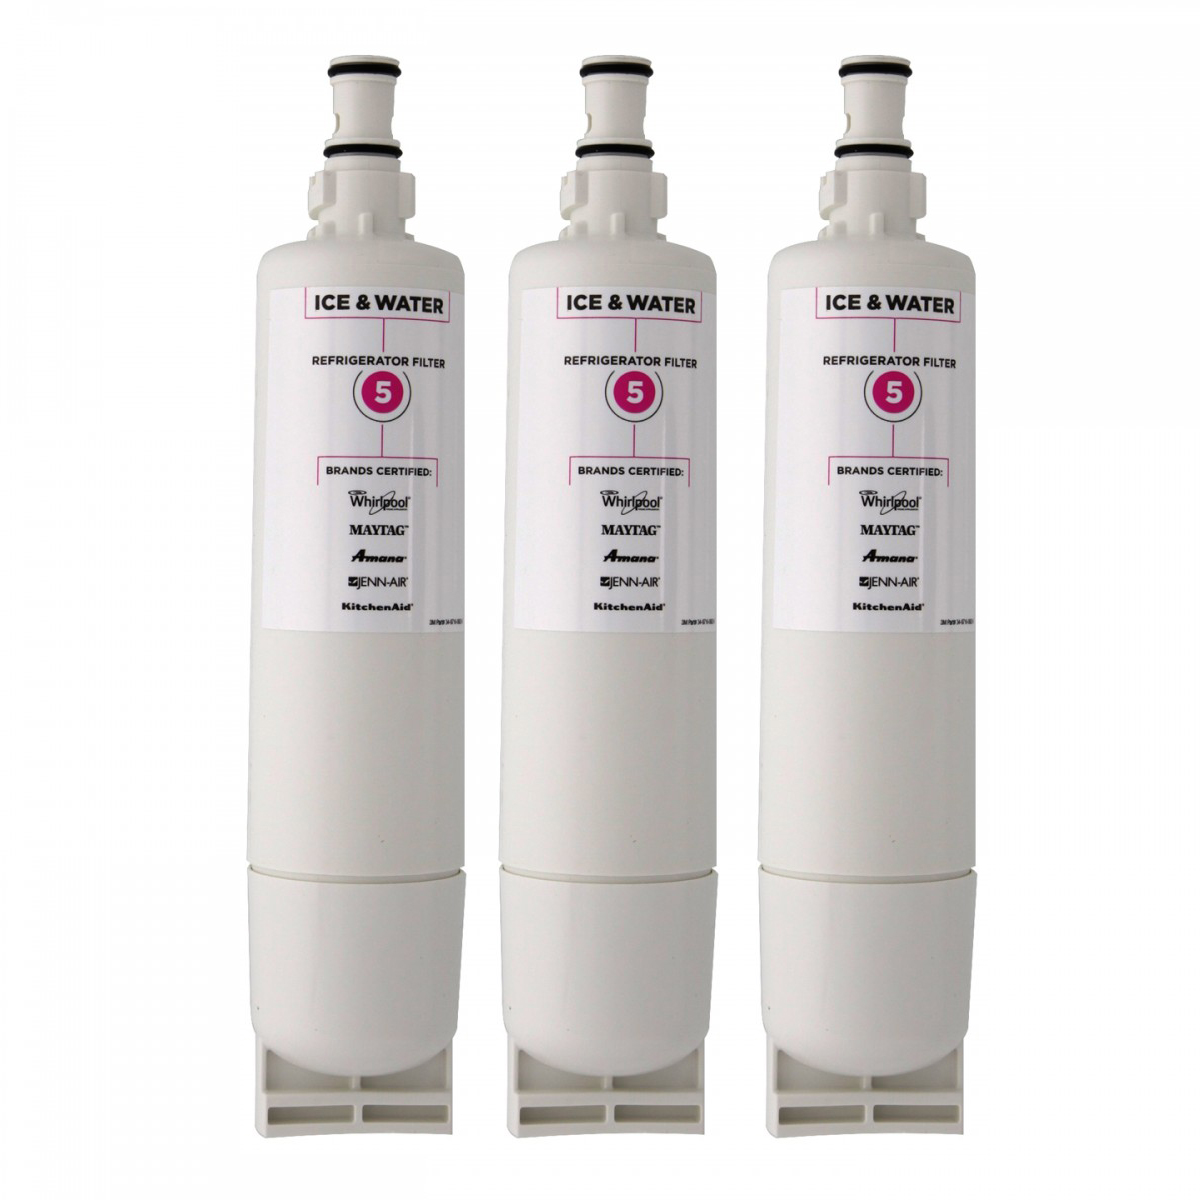 Whirlpool EveryDrop EDR5RXD1 4396508 4396510 Filter 5 Ice & Water Filter - 3 Pack